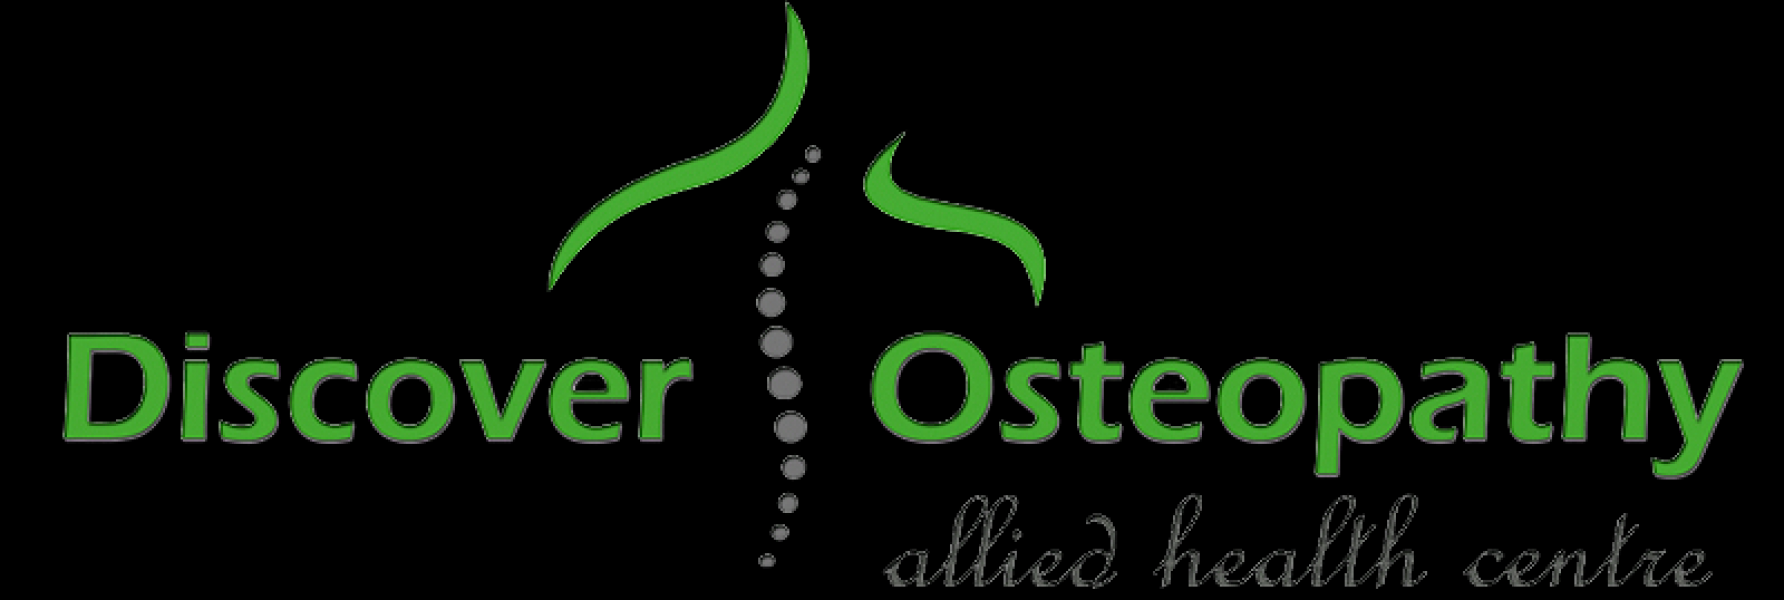 Discover Osteopathy